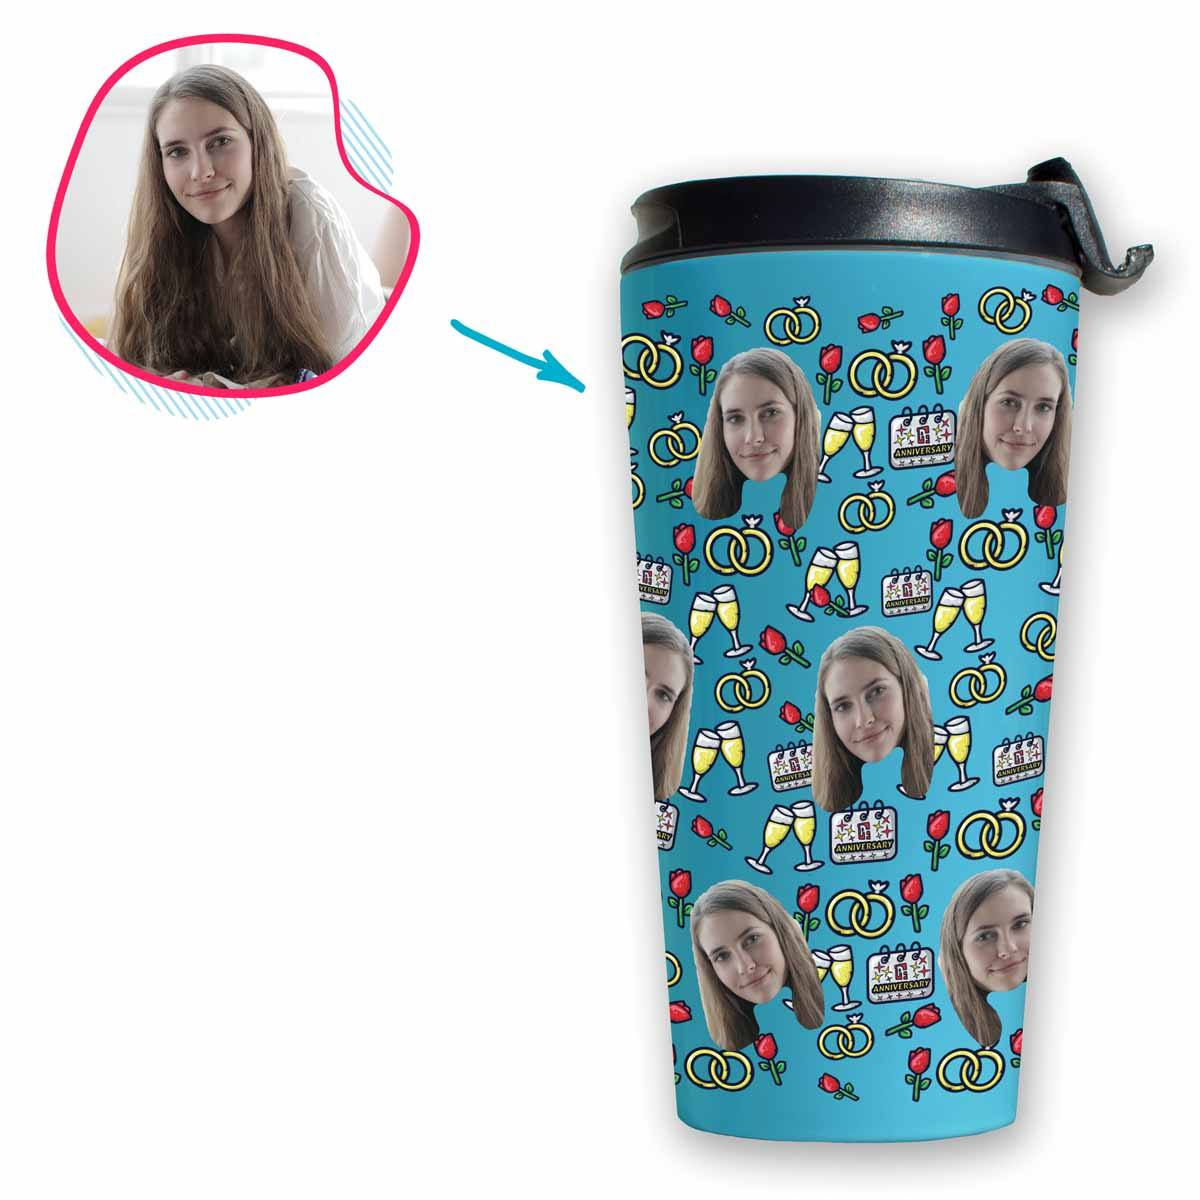 Blue Anniversary personalized travel mug with photo of face printed on it